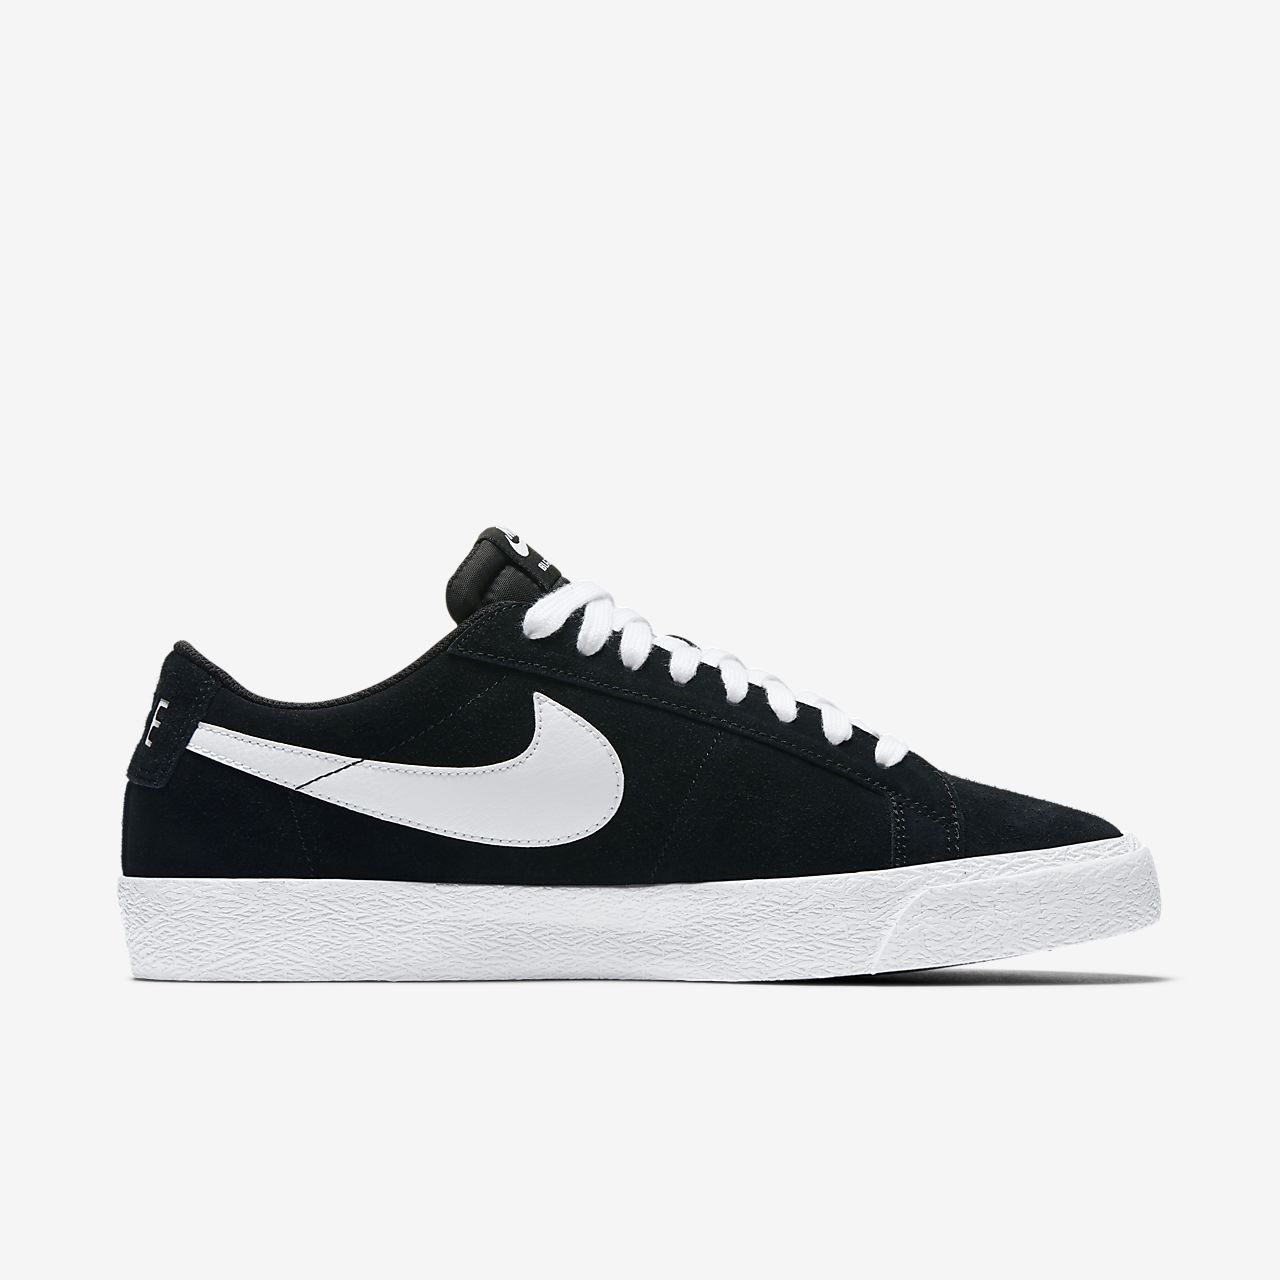 separation shoes 421ed c035b ... Nike SB Blazer Zoom Low Men s Skateboarding Shoe